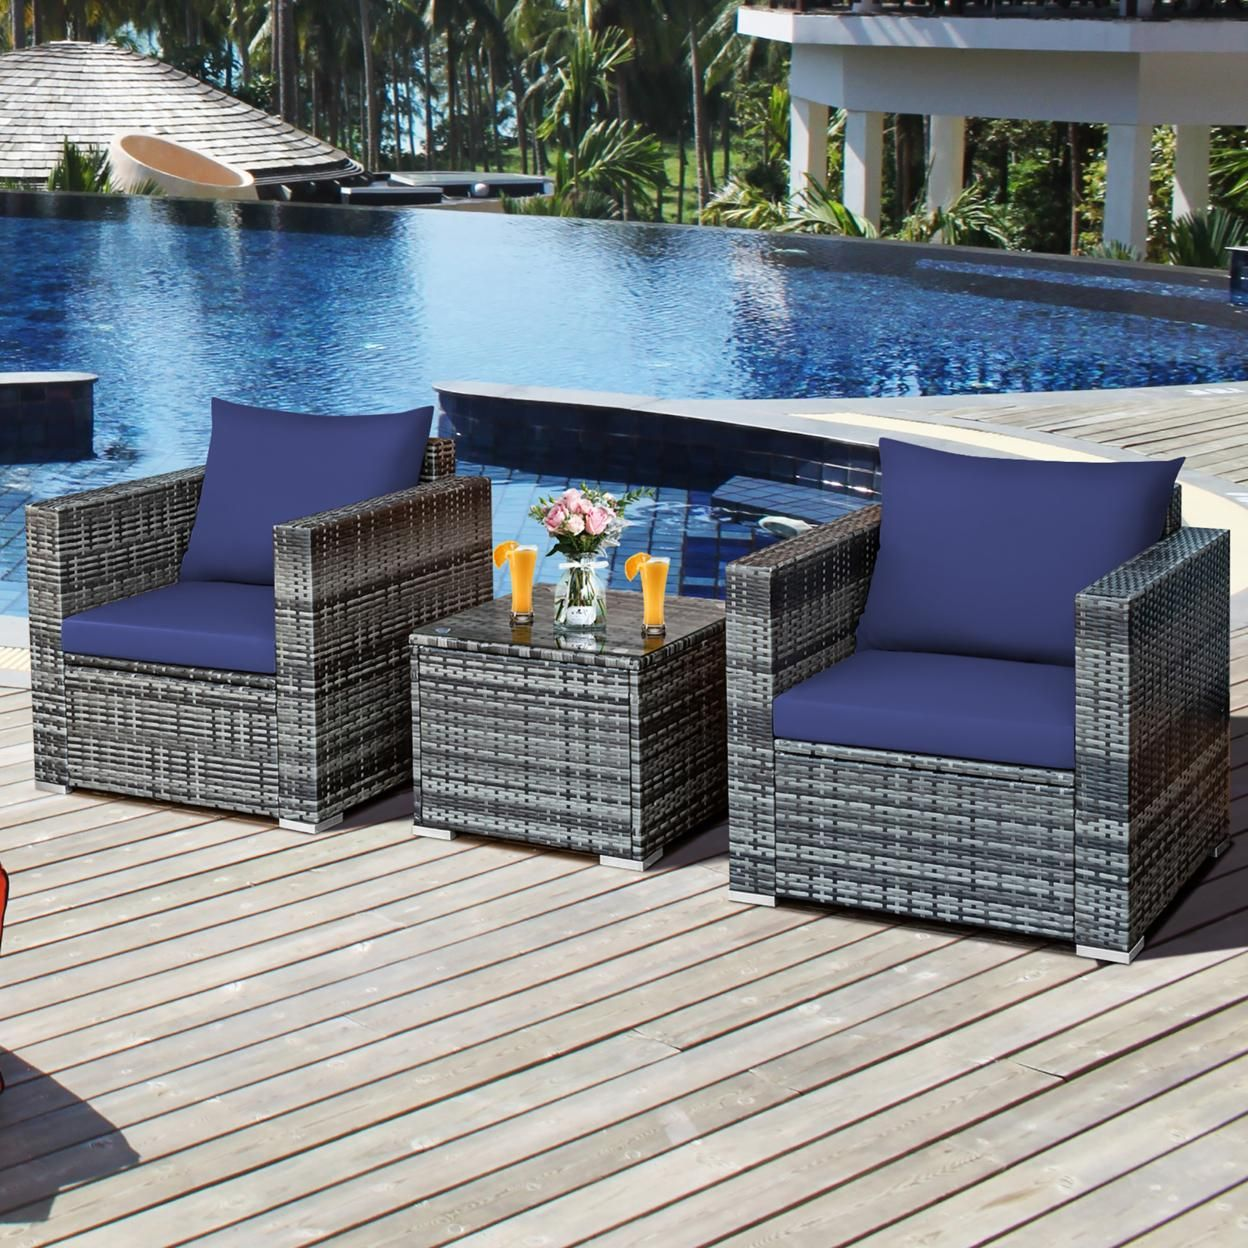 Costway 3 PC Patio Rattan Furniture Bistro Set Cushioned Sofa Chair Table White\Navy